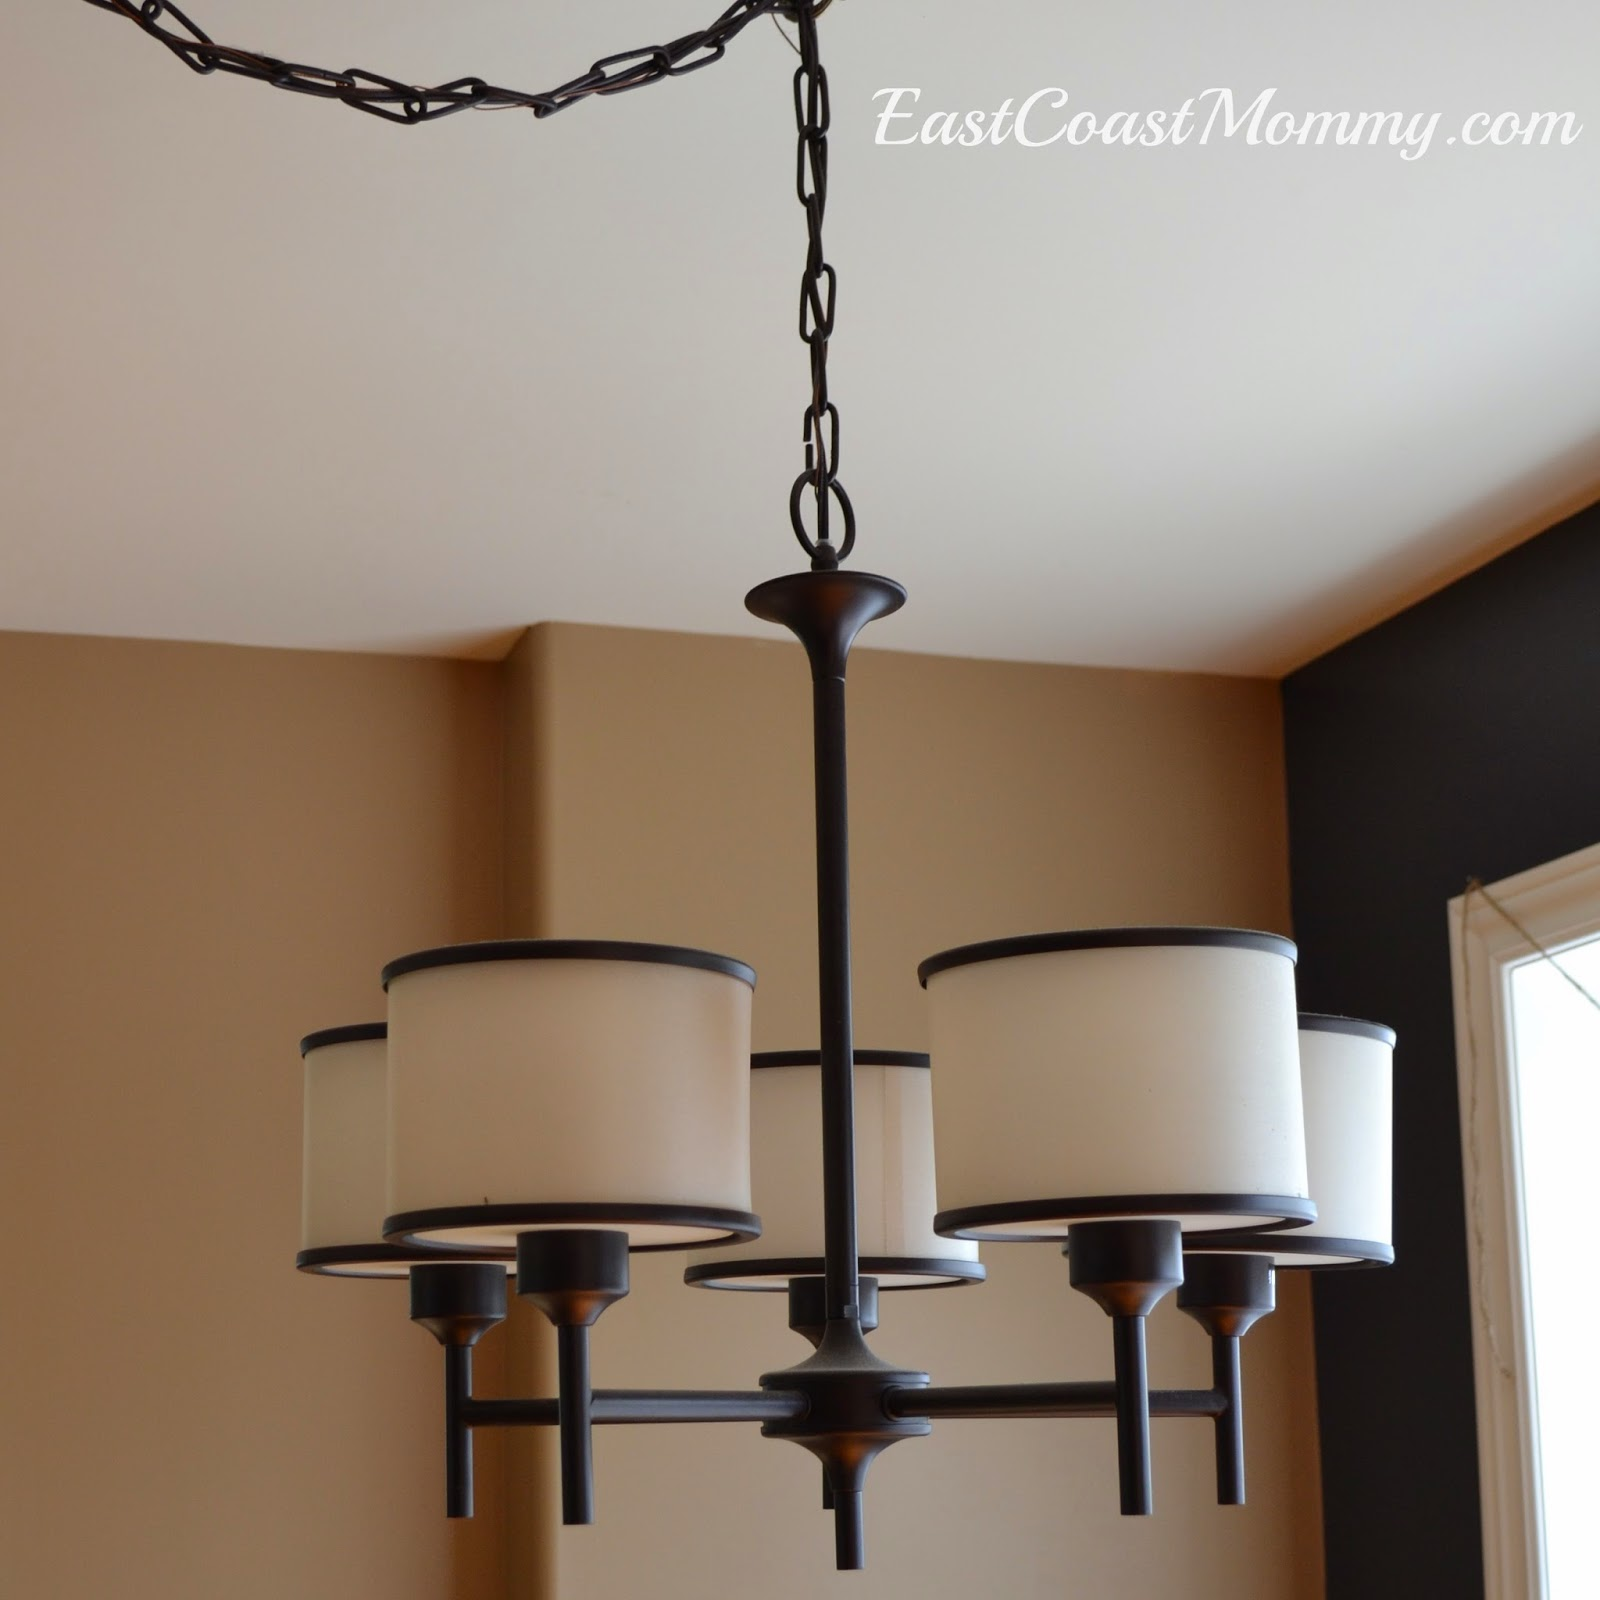 Over Table Light Fixture East Coast Mommy Let 39s Discuss Kitchen Makeovers